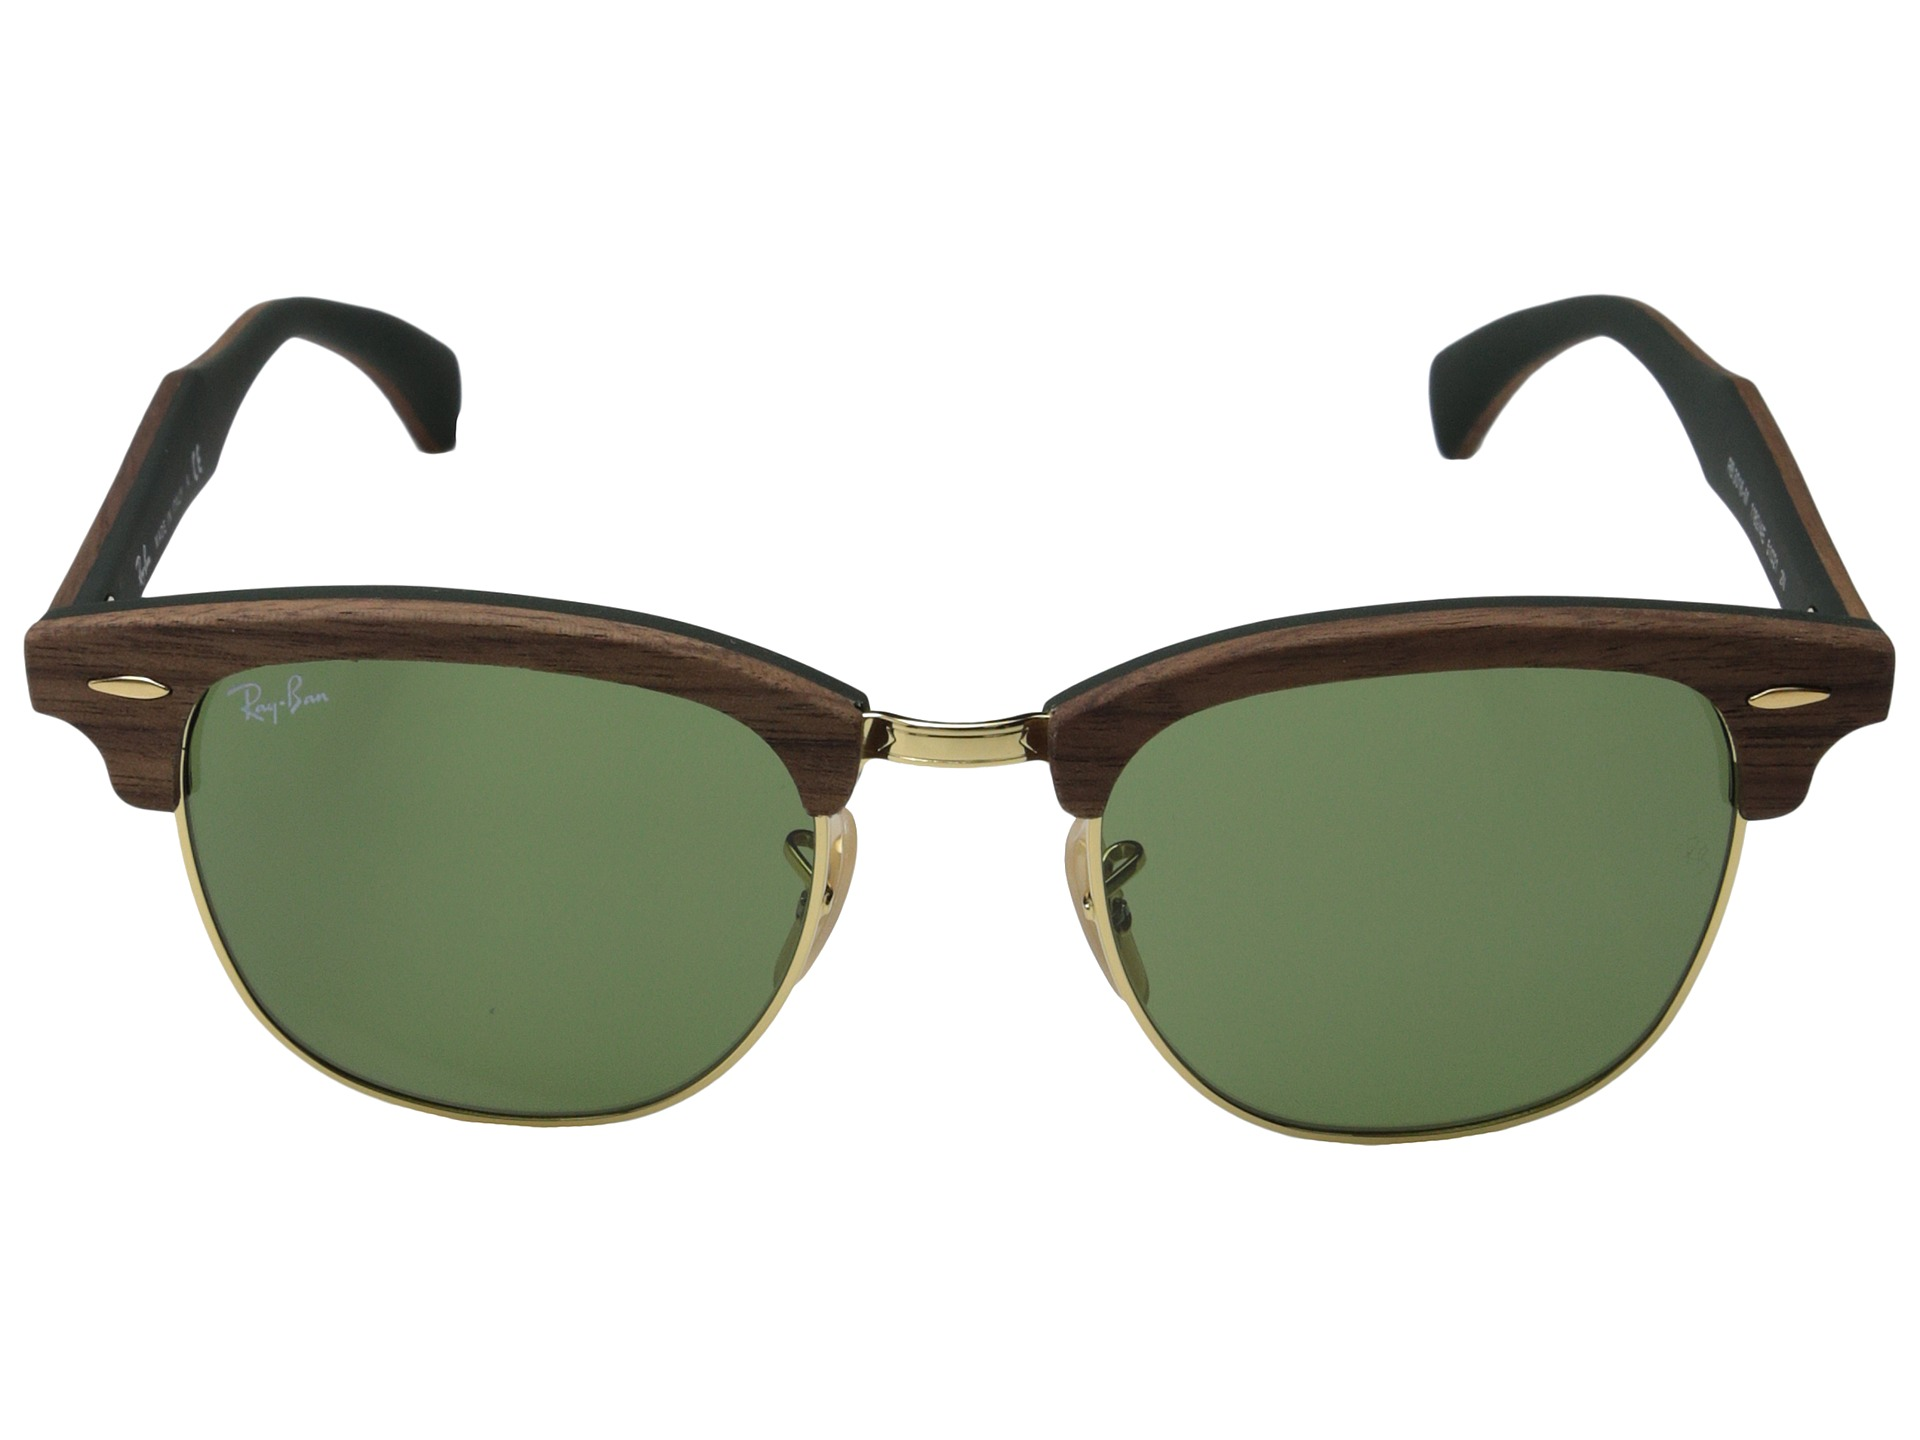 a5990a1cac6 Ray Ban Clubmaster Ii Sizes « Heritage Malta